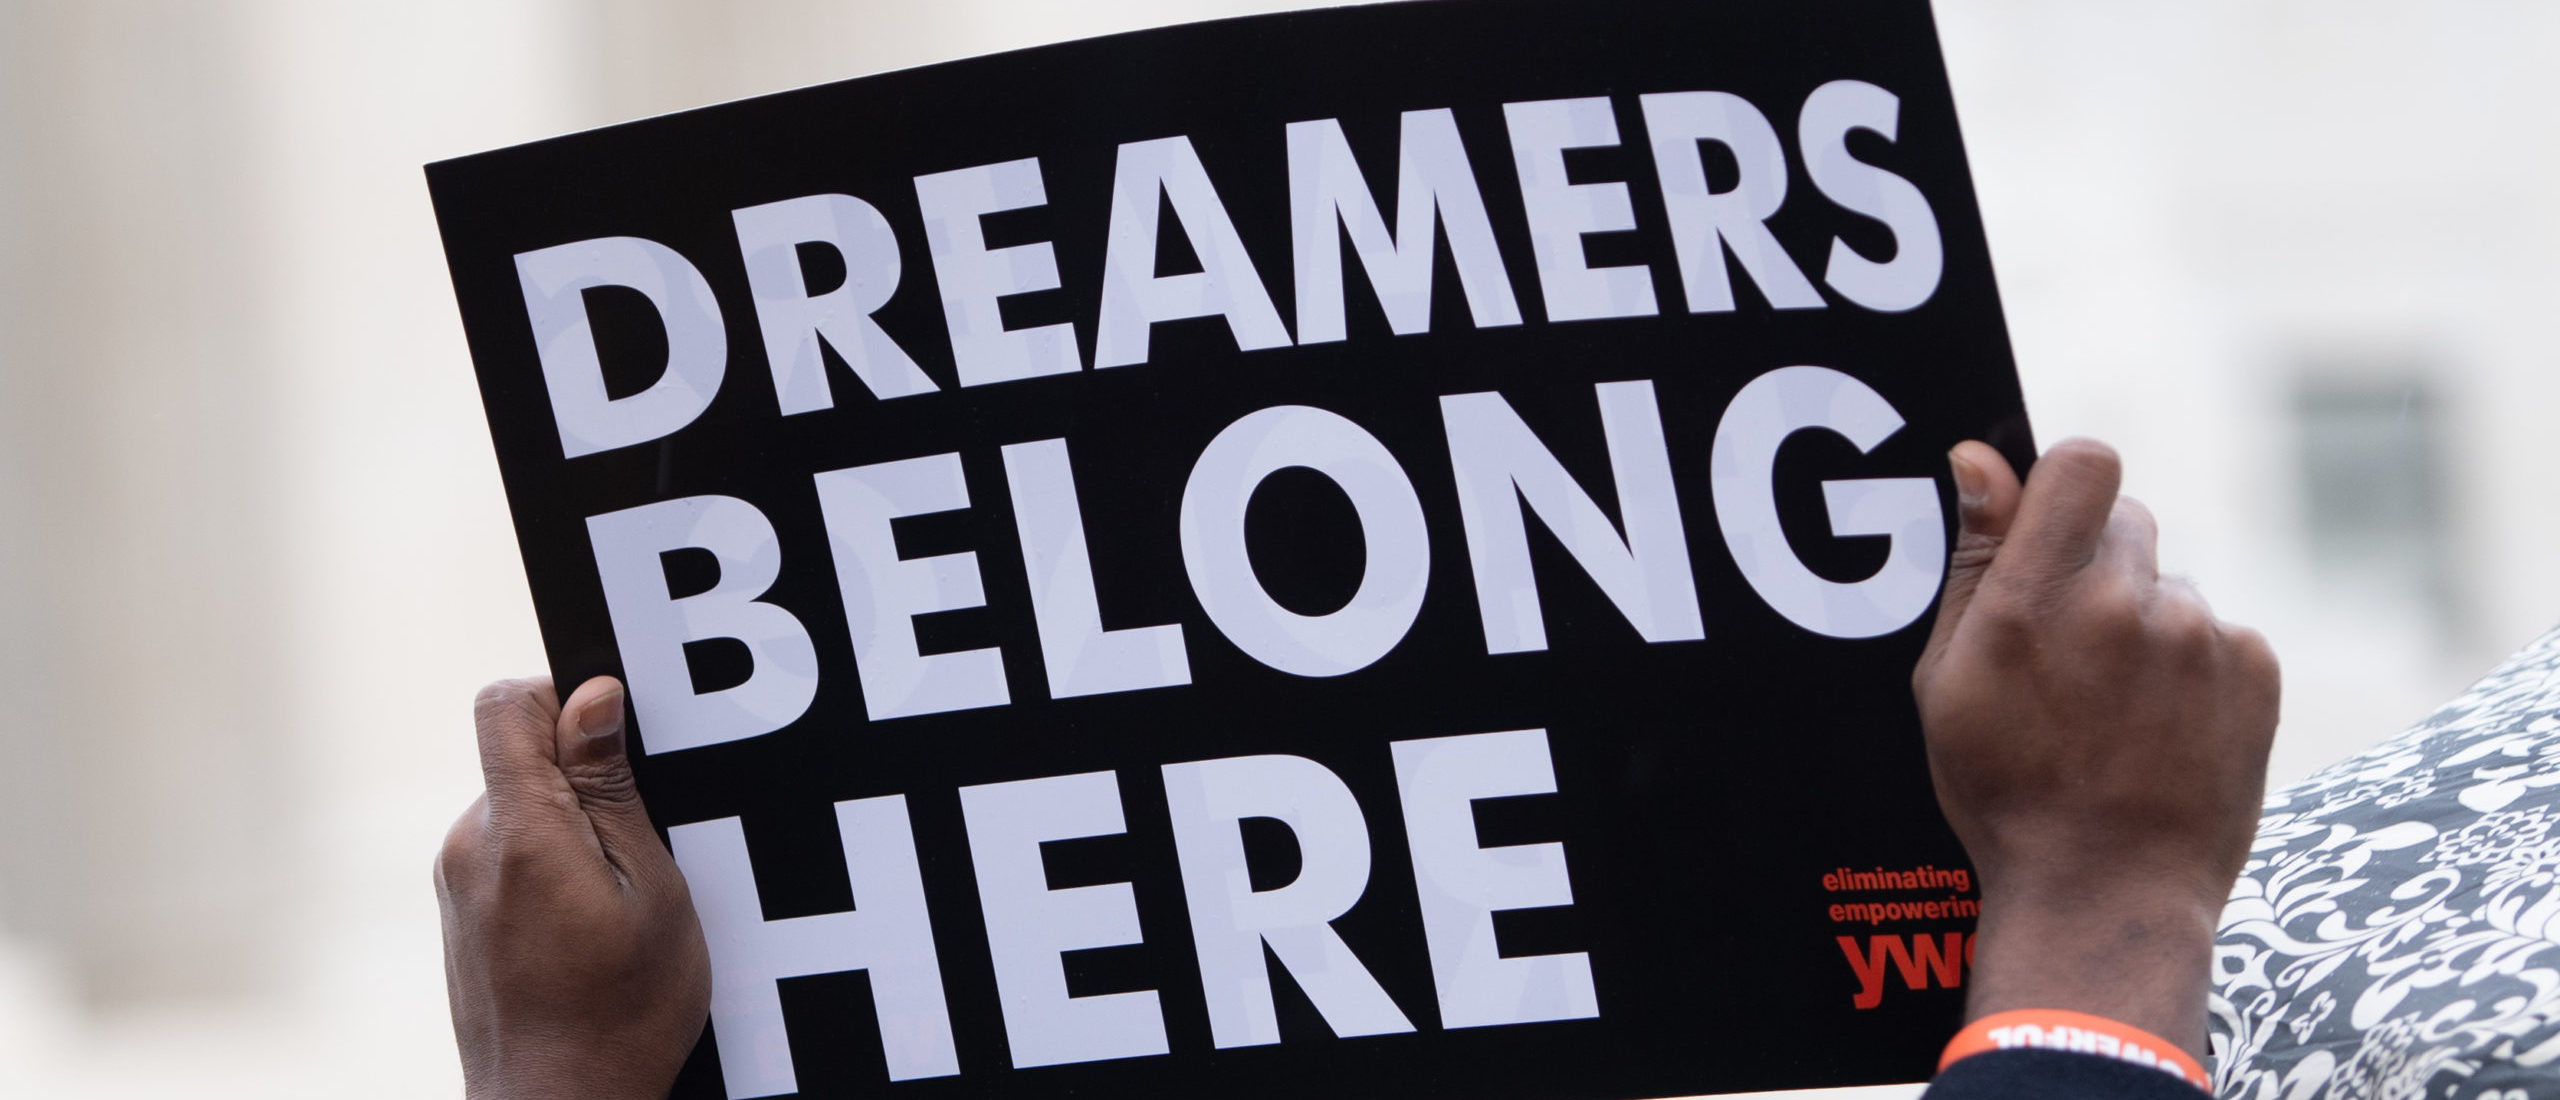 """Immigration rights activists hold a rally in front of the US Supreme Court in Washington, DC, November 12, 2019, as the Court hears arguments about ending the Obama-era DACA (Deferred Action for Childhood Arrivals) program. - The US Supreme Court hears arguments on November 12, 2019 on the fate of the """"Dreamers,"""" an estimated 700,000 people brought to the country illegally as children but allowed to stay and work under a program created by former president Barack Obama.Known as Deferred Action for Childhood Arrivals or DACA, the program came under attack from President Donald Trump who wants it terminated, and expired last year after the Congress failed to come up with a replacement. (Photo by SAUL LOEB / AFP) (Photo by SAUL LOEB/AFP via Getty Images)"""